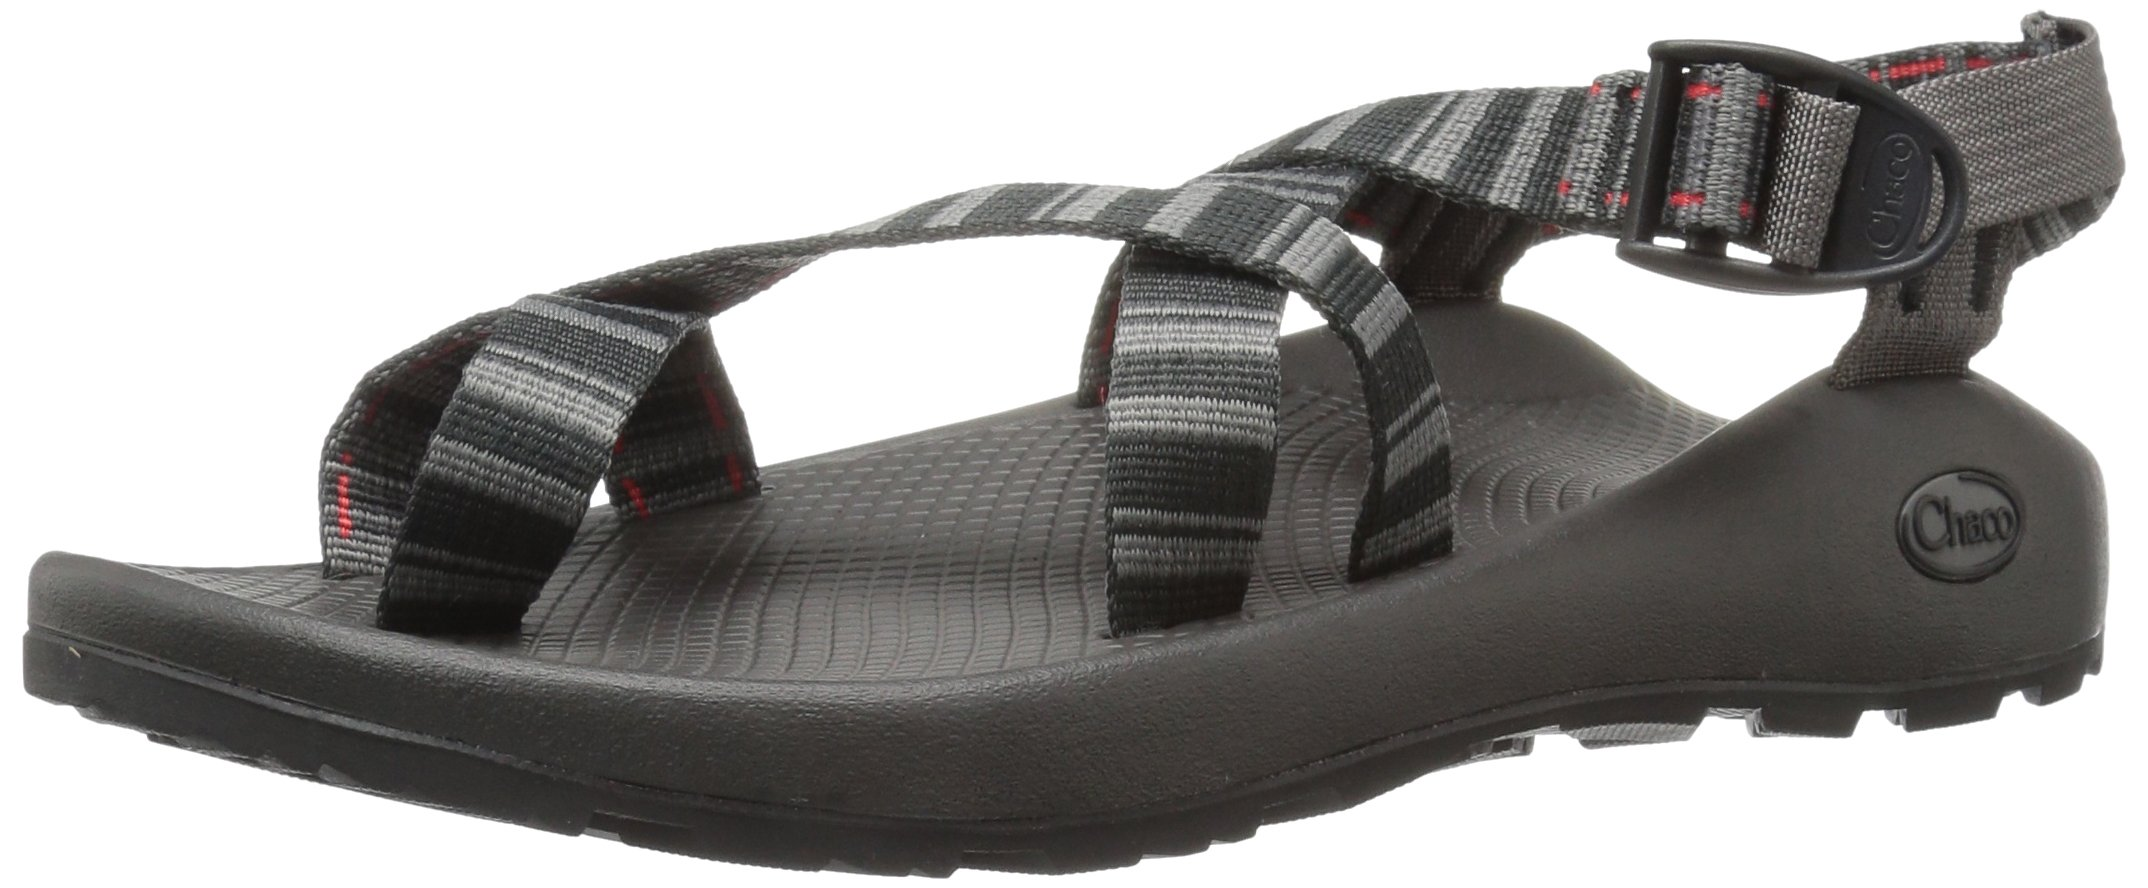 Chaco Men's Z2 Classic Athletic Sandal, Lazo Gray, 9 M US